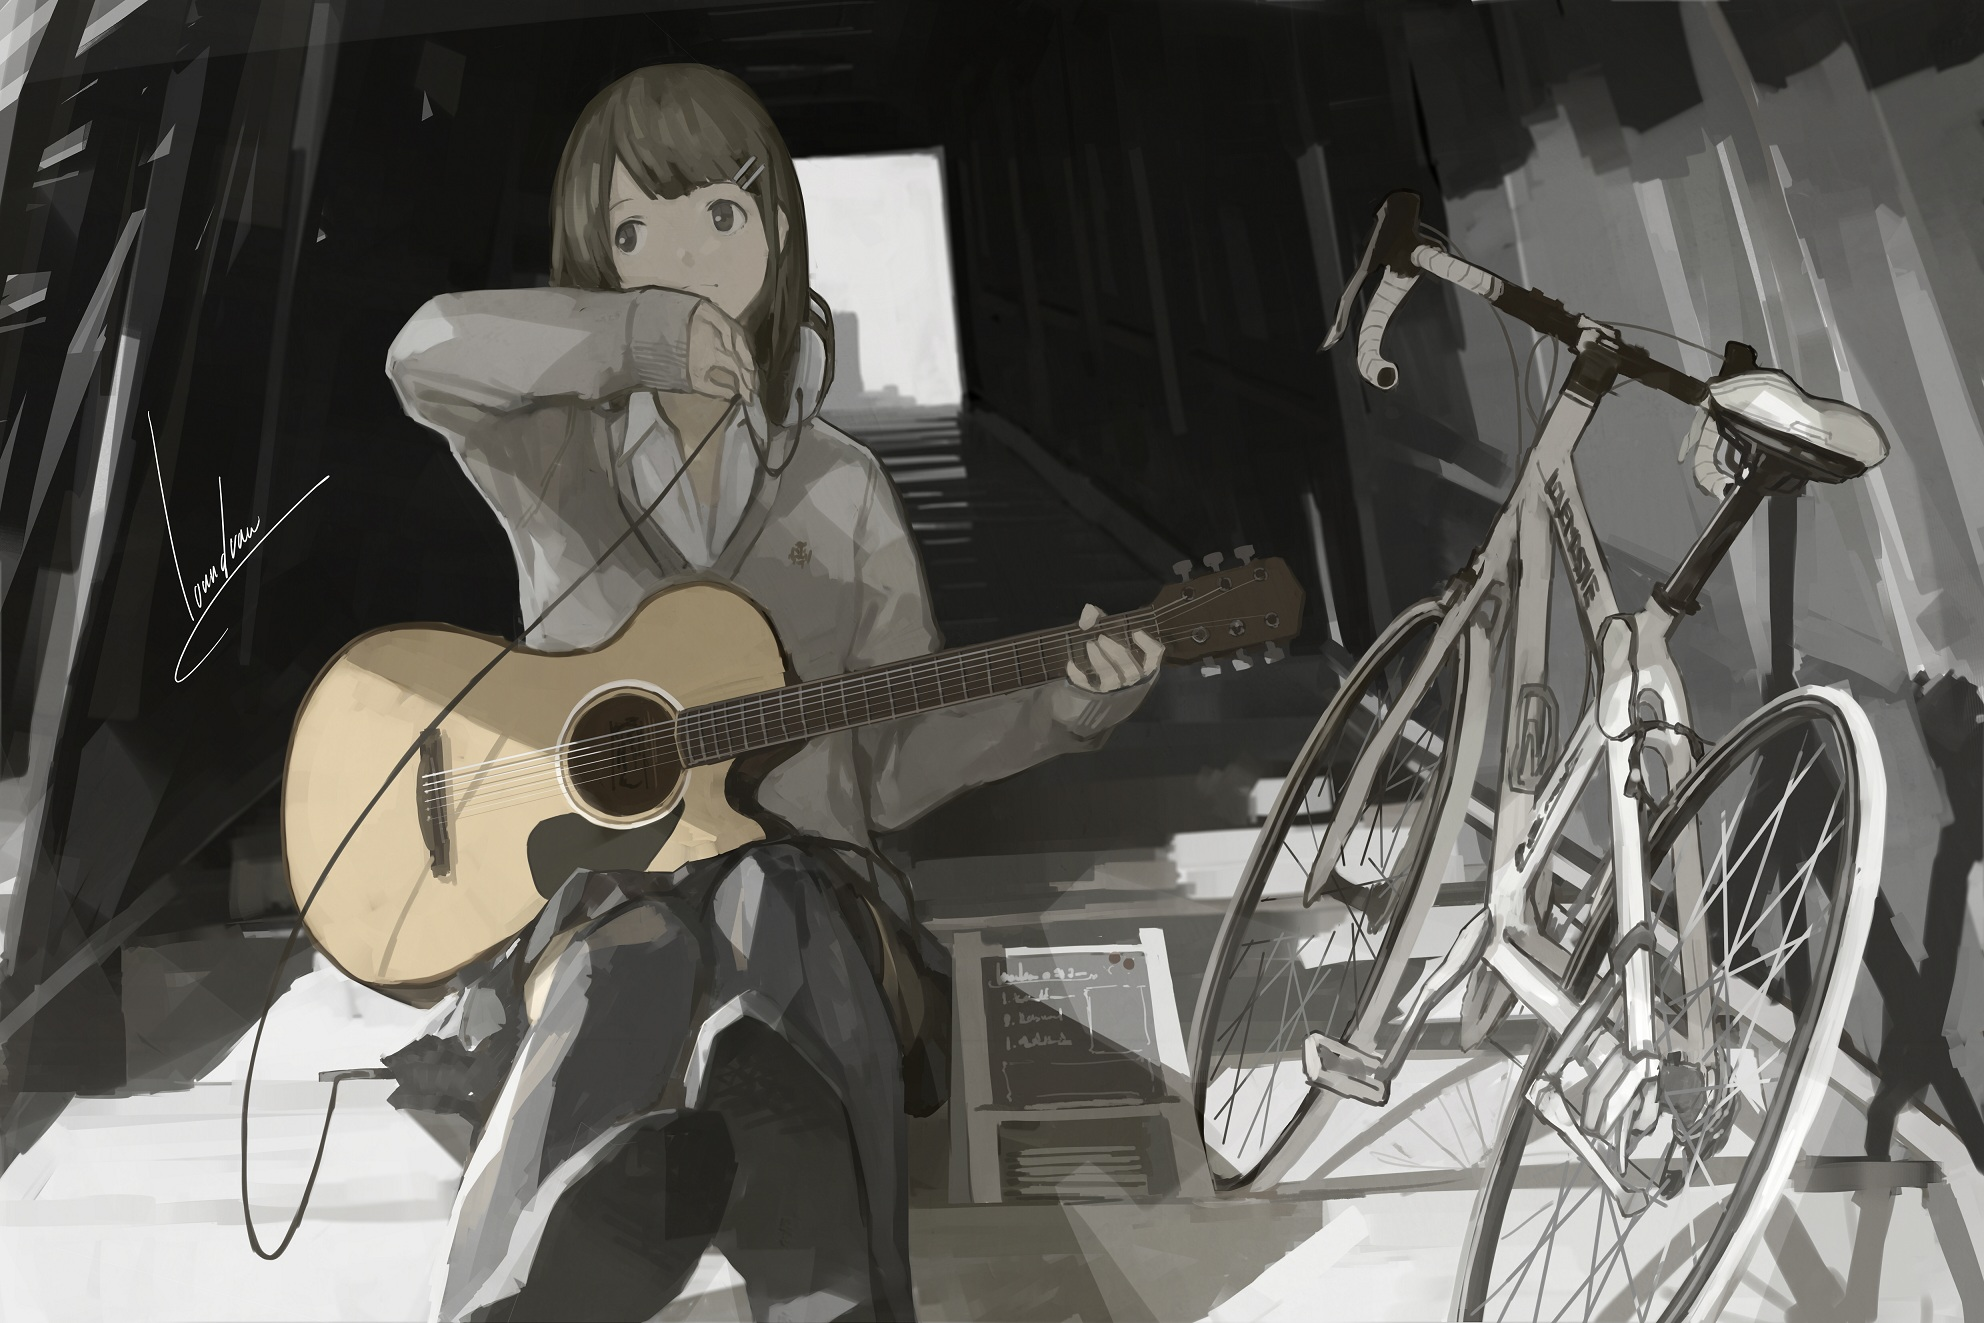 Guitar Girl Wallpaper Iphone Loundraw Zerochan Anime Image Board